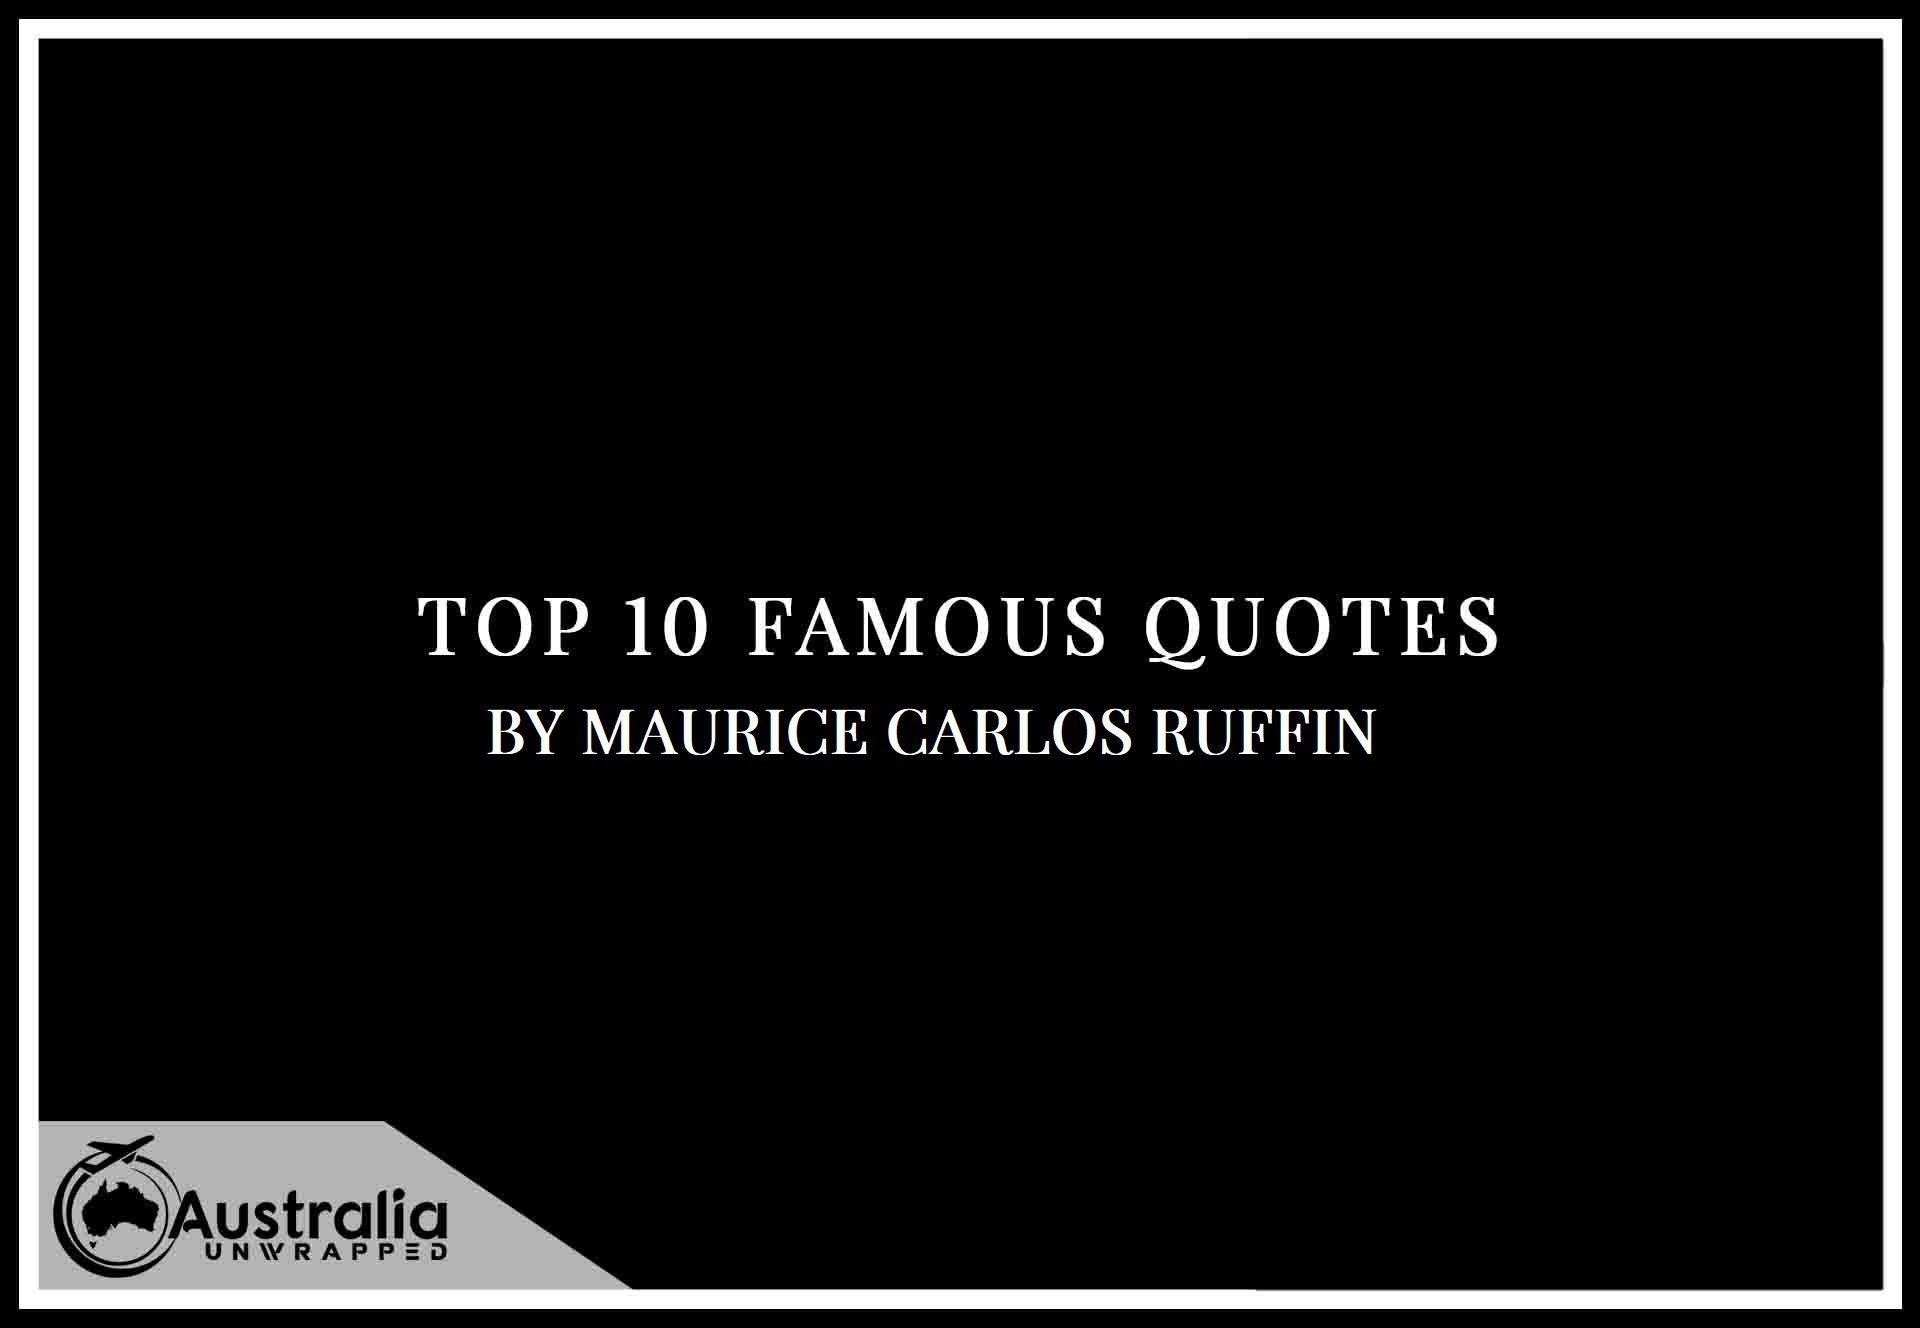 Top 10 Famous Quotes by Author Maurice Carlos Ruffin